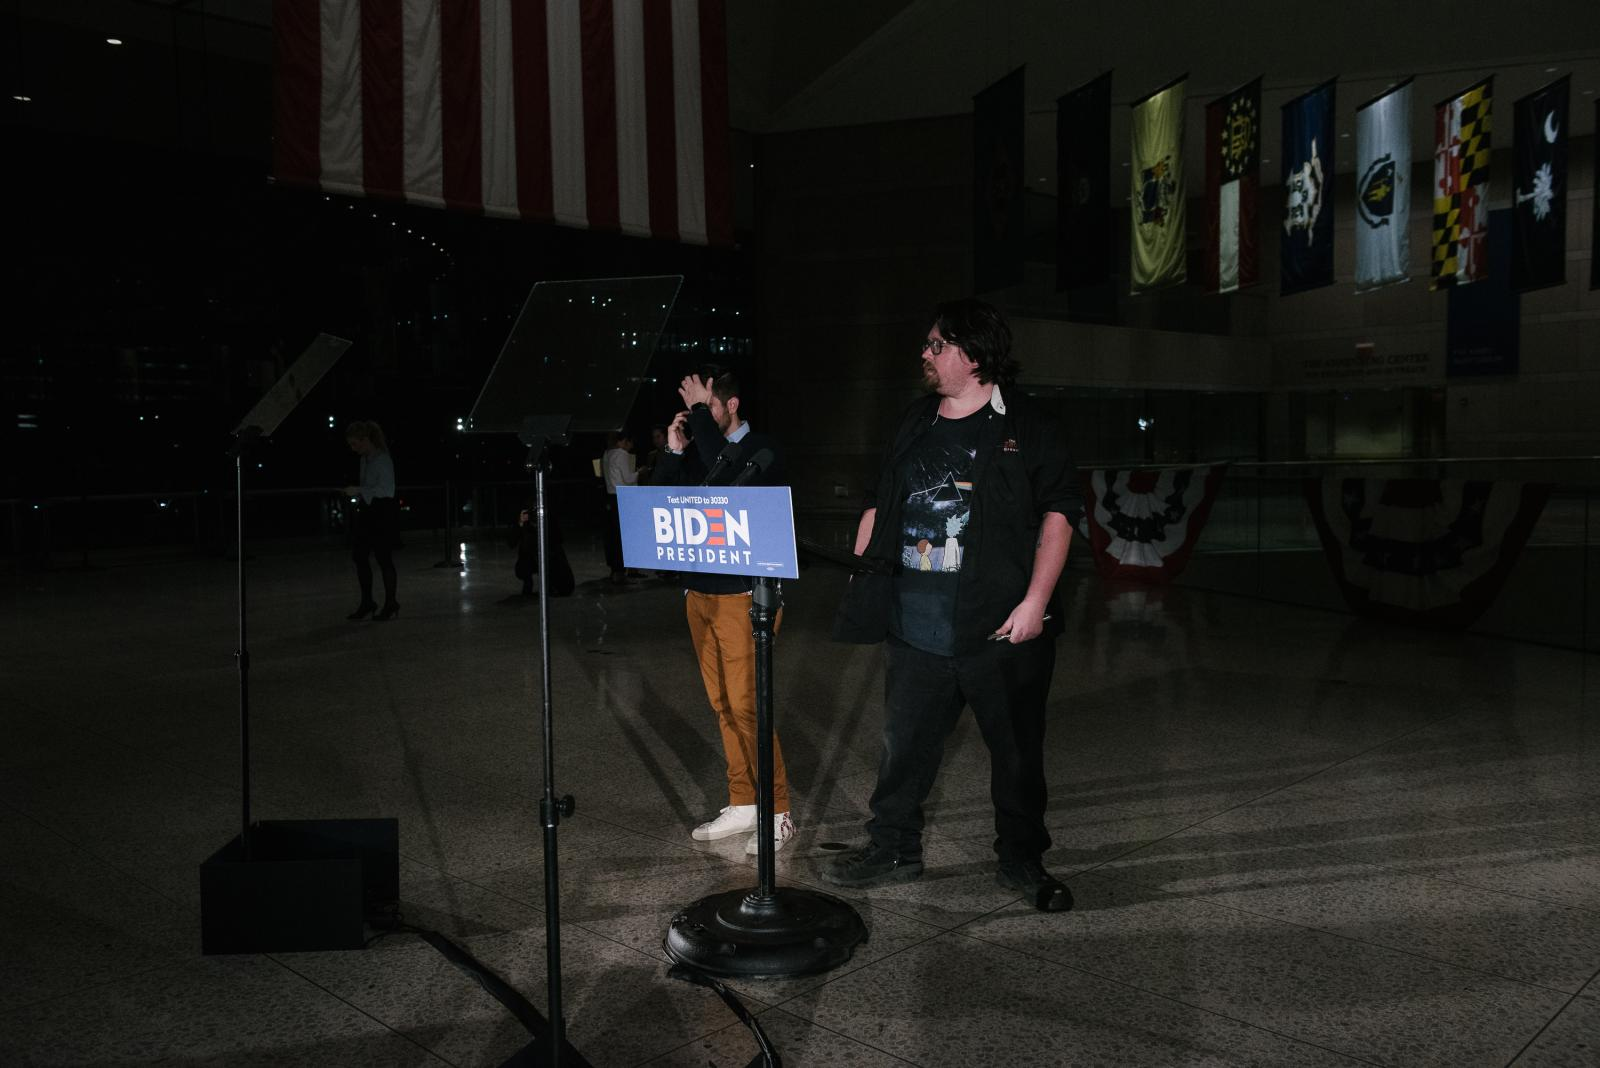 Campaign workers for former Vice President Joe Biden prepare the stage for Biden to speak at the National Constitution Center in Philadelphia, PA on Tuesday, March 10, 2020. Biden and Senator Bernie Sanders both cancelled their Cleveland, Ohio rallies because of concerns about the coronavirus. Hannah Yoon NYTPRIMARY